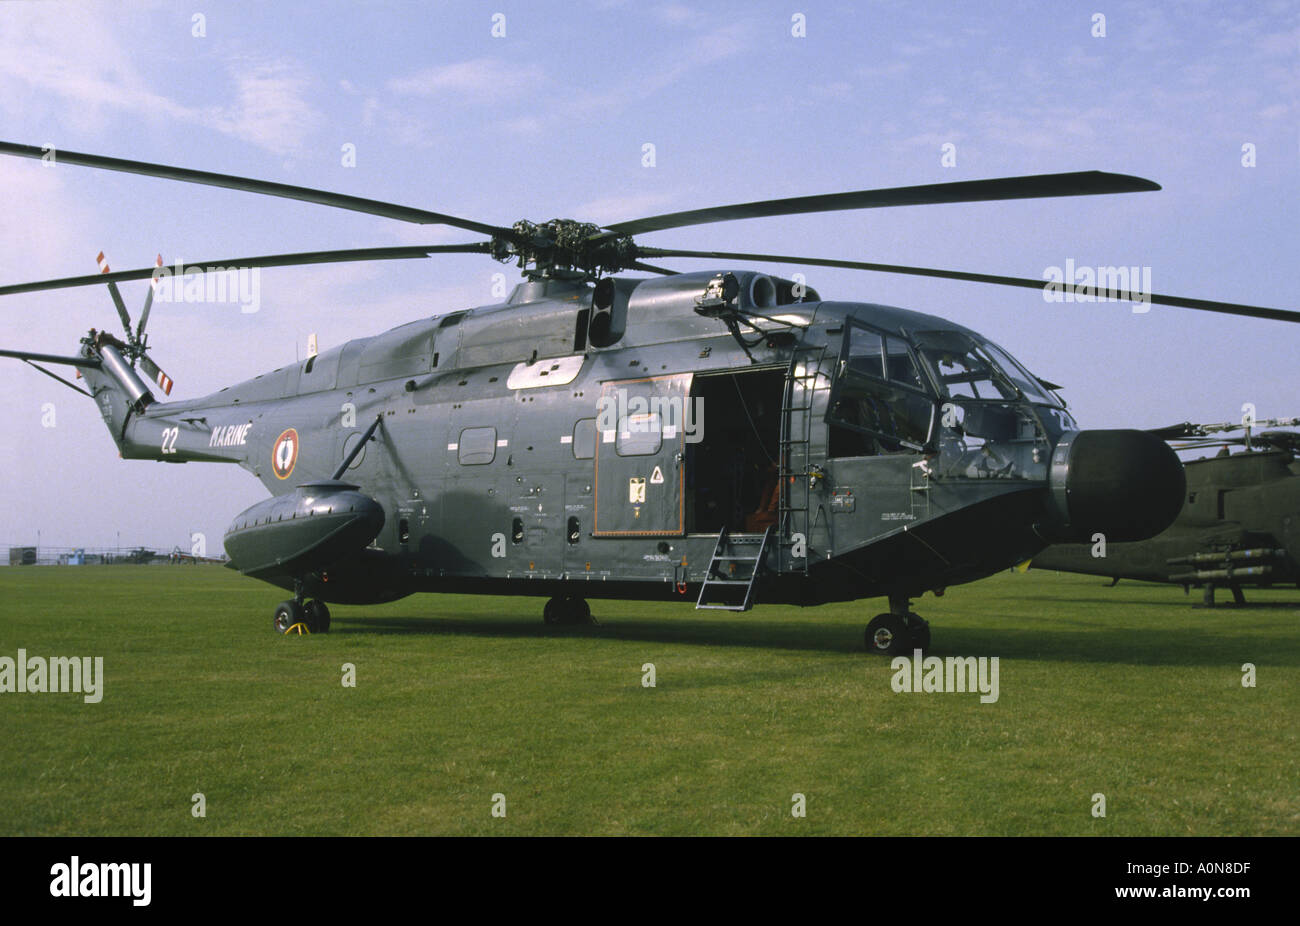 helicopter aircraft with Stock Photo Aerospatiale Sa321 Super Frelon Helicopter French Navy Middle Wallop 1857758 on 687 besides 254 besides Mil Mi 26 06 likewise Elizabeth Tower as well Fsx Cefamet Eurocopter Ec135.